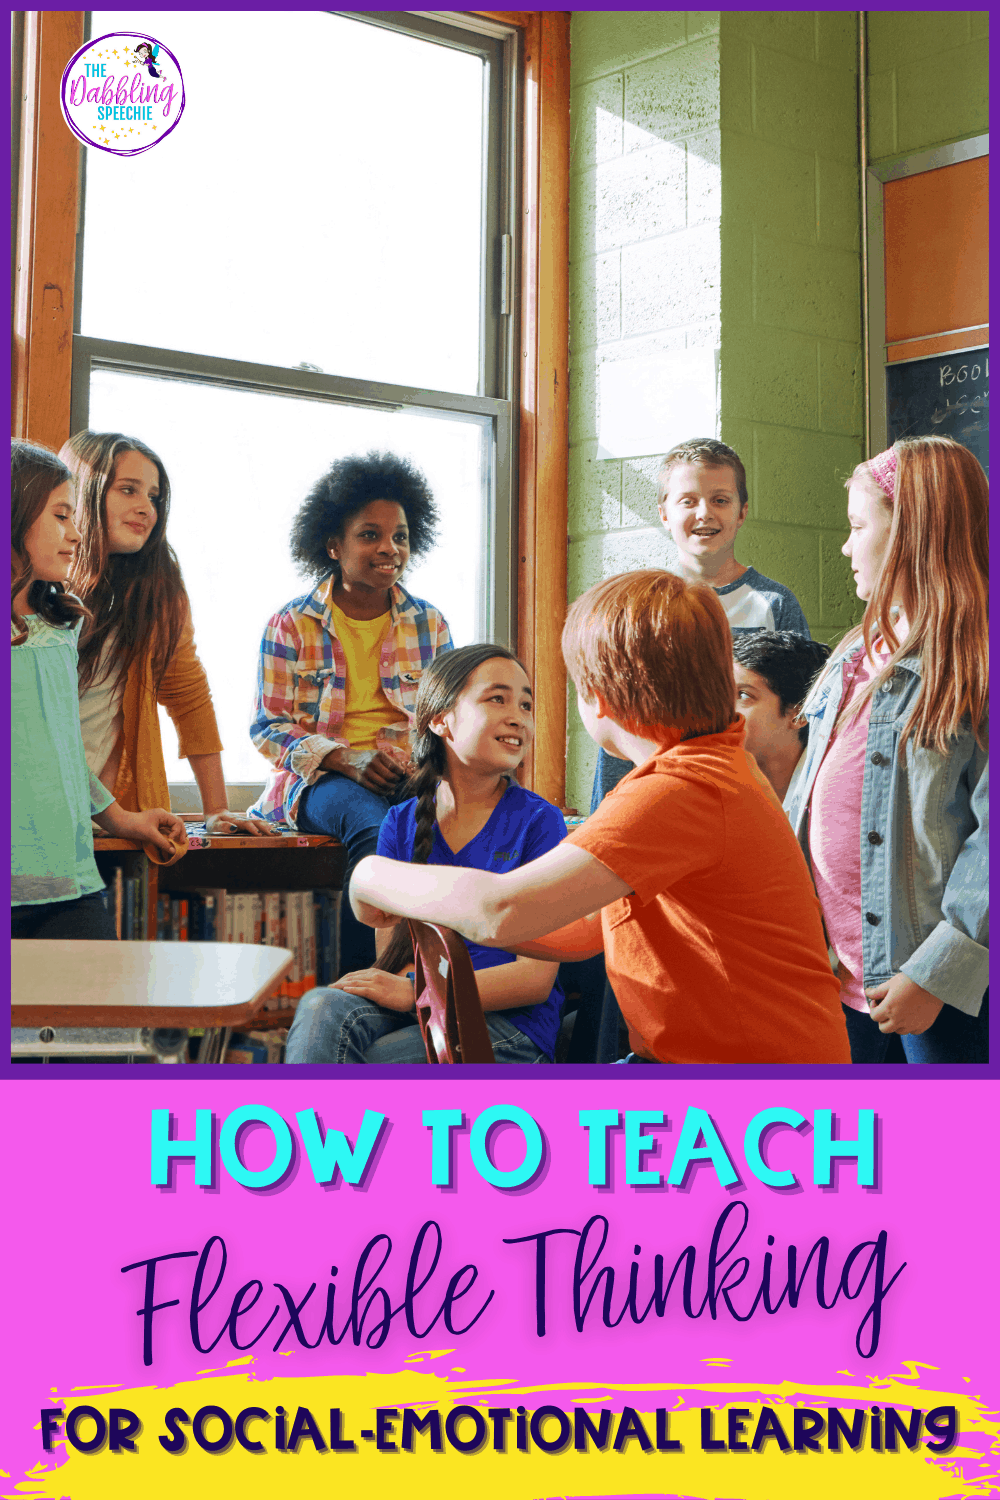 Lesson plan ideas for teaching flexible thinking in pragmatic language therapy to help build social-emotional learning in your speech therapy sessions.